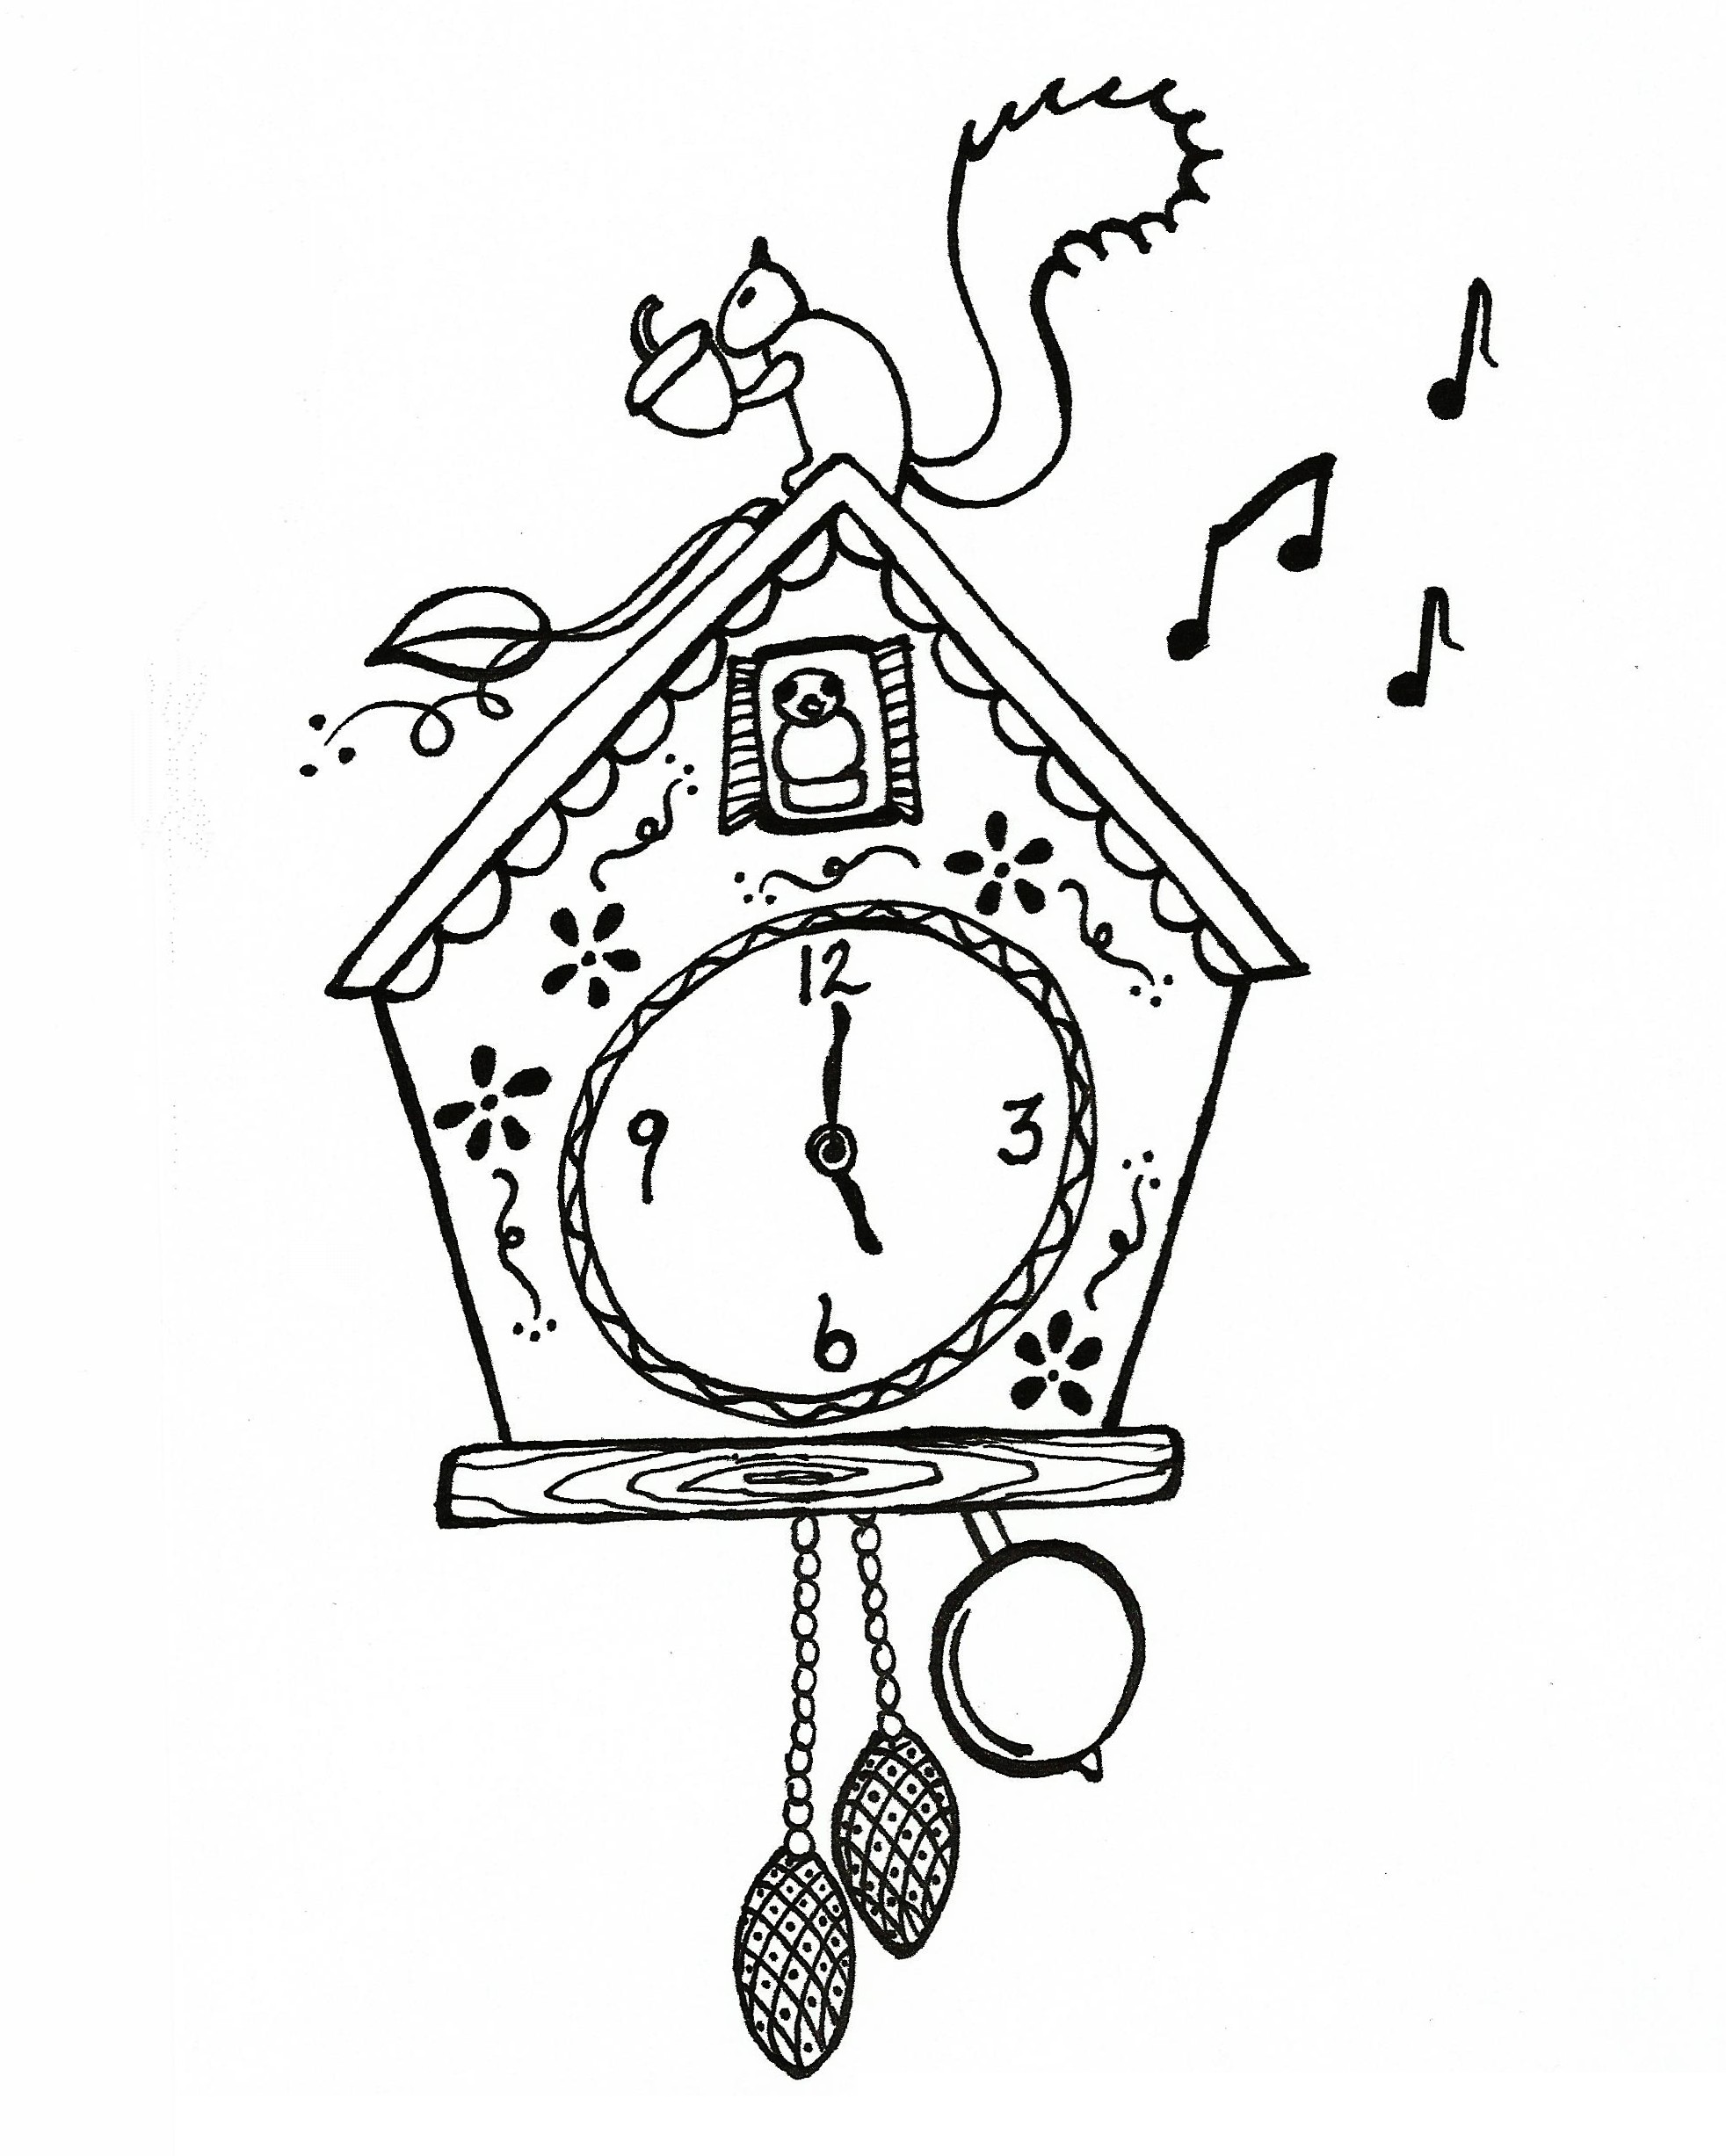 Cuckoo Clock Coloring Page To Print